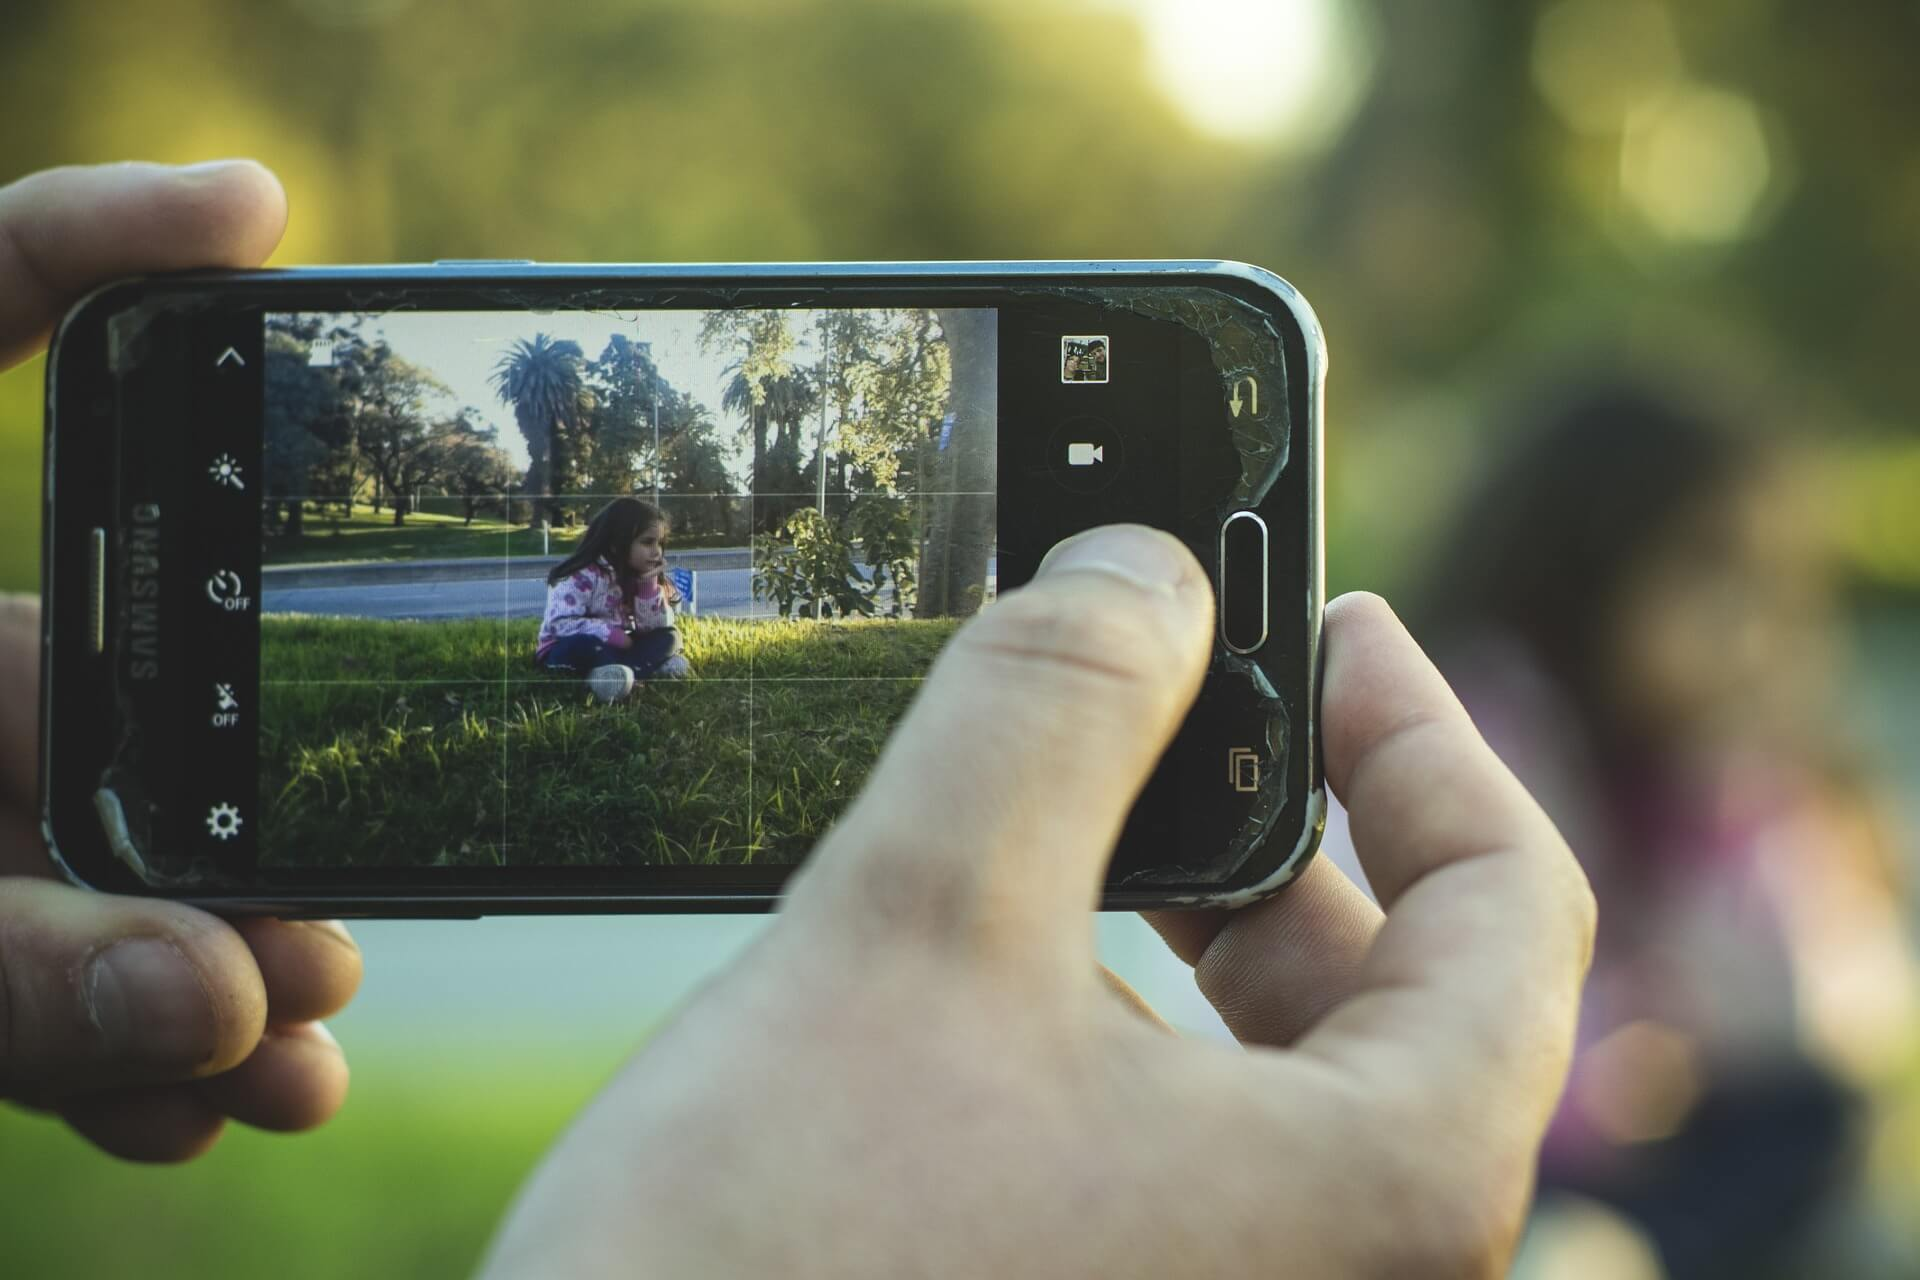 content/tr-tr/images/repository/isc/2020/is-it-safe-to-post-photos-of-your-kids-online.jpg